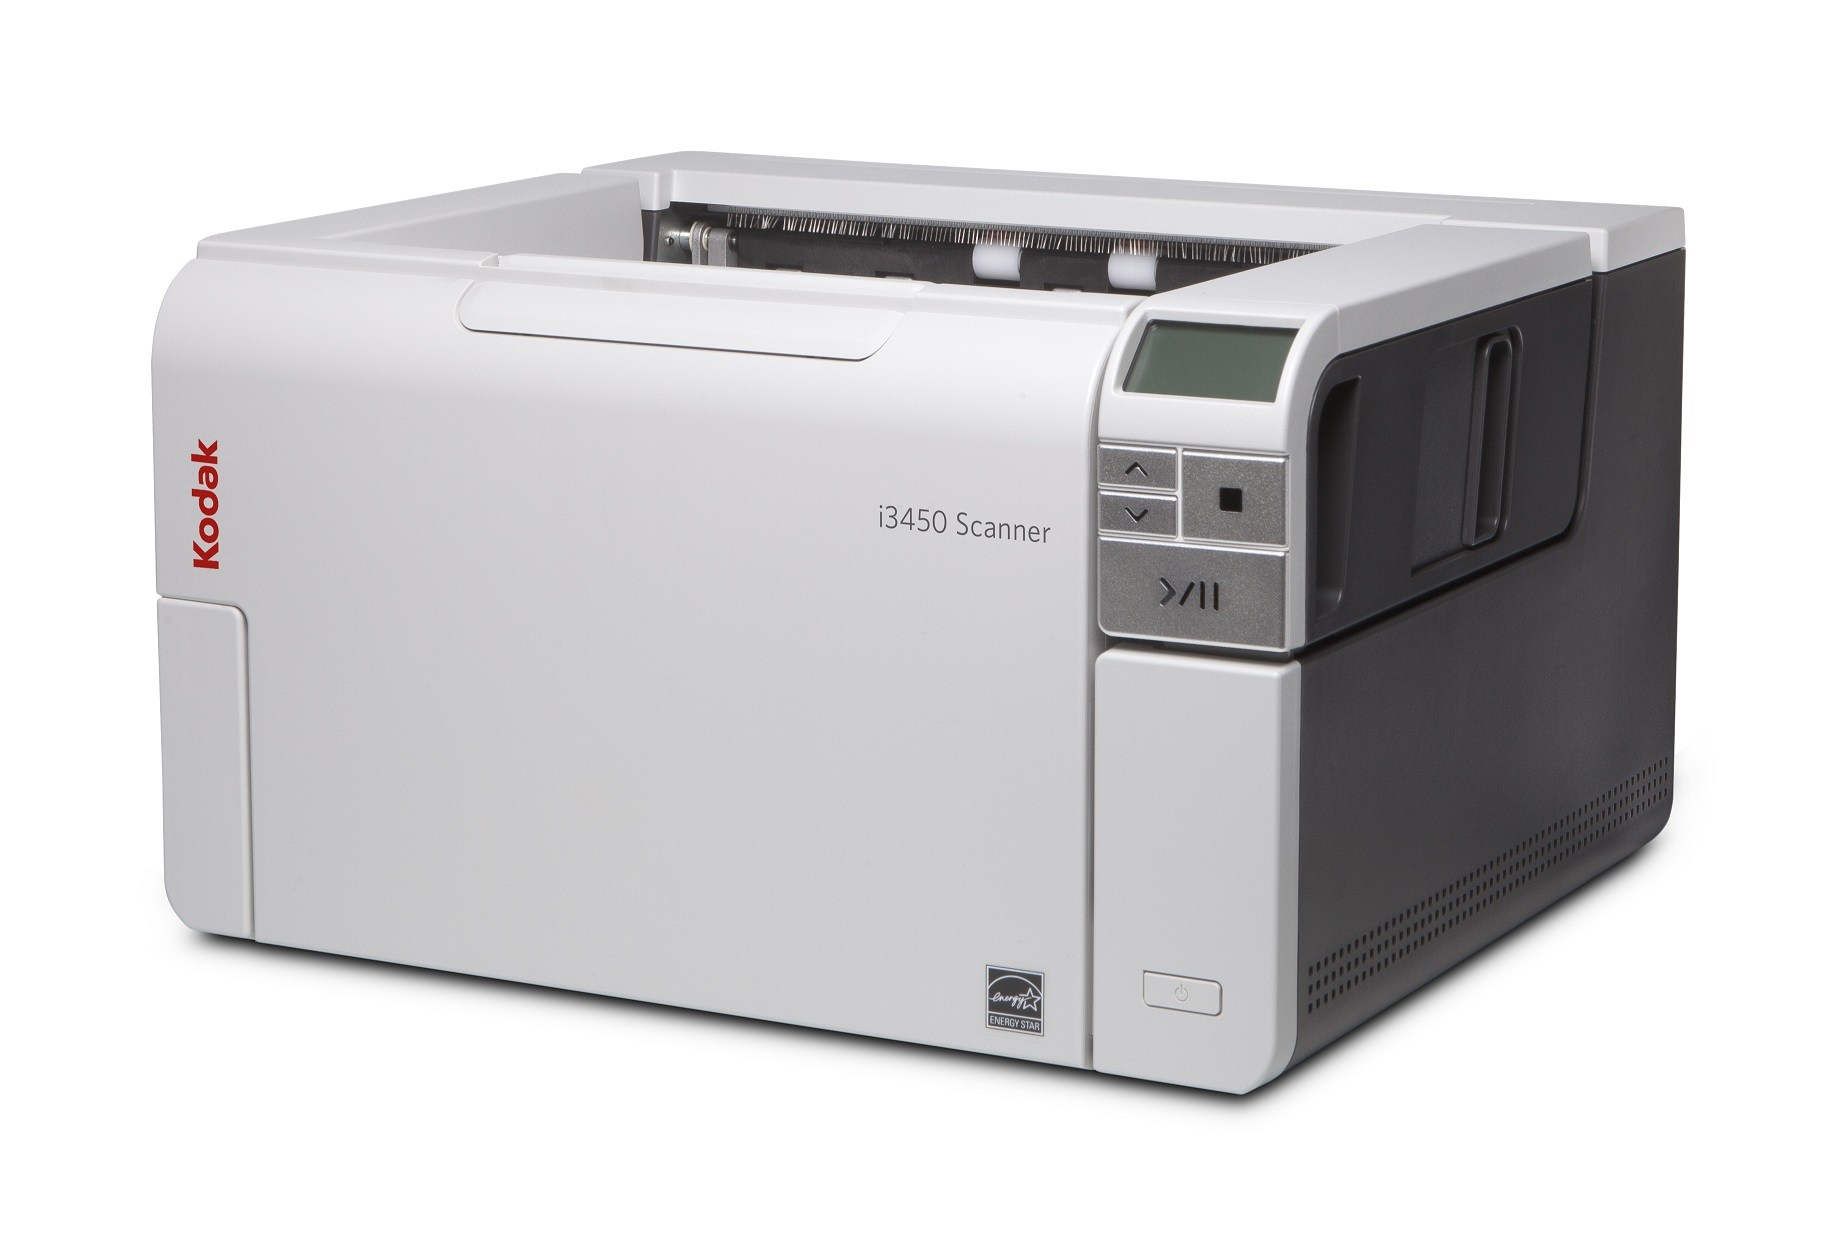 Kodak Alaris\' i3000 And i4000 Series Scanners Win Better Buys For ...